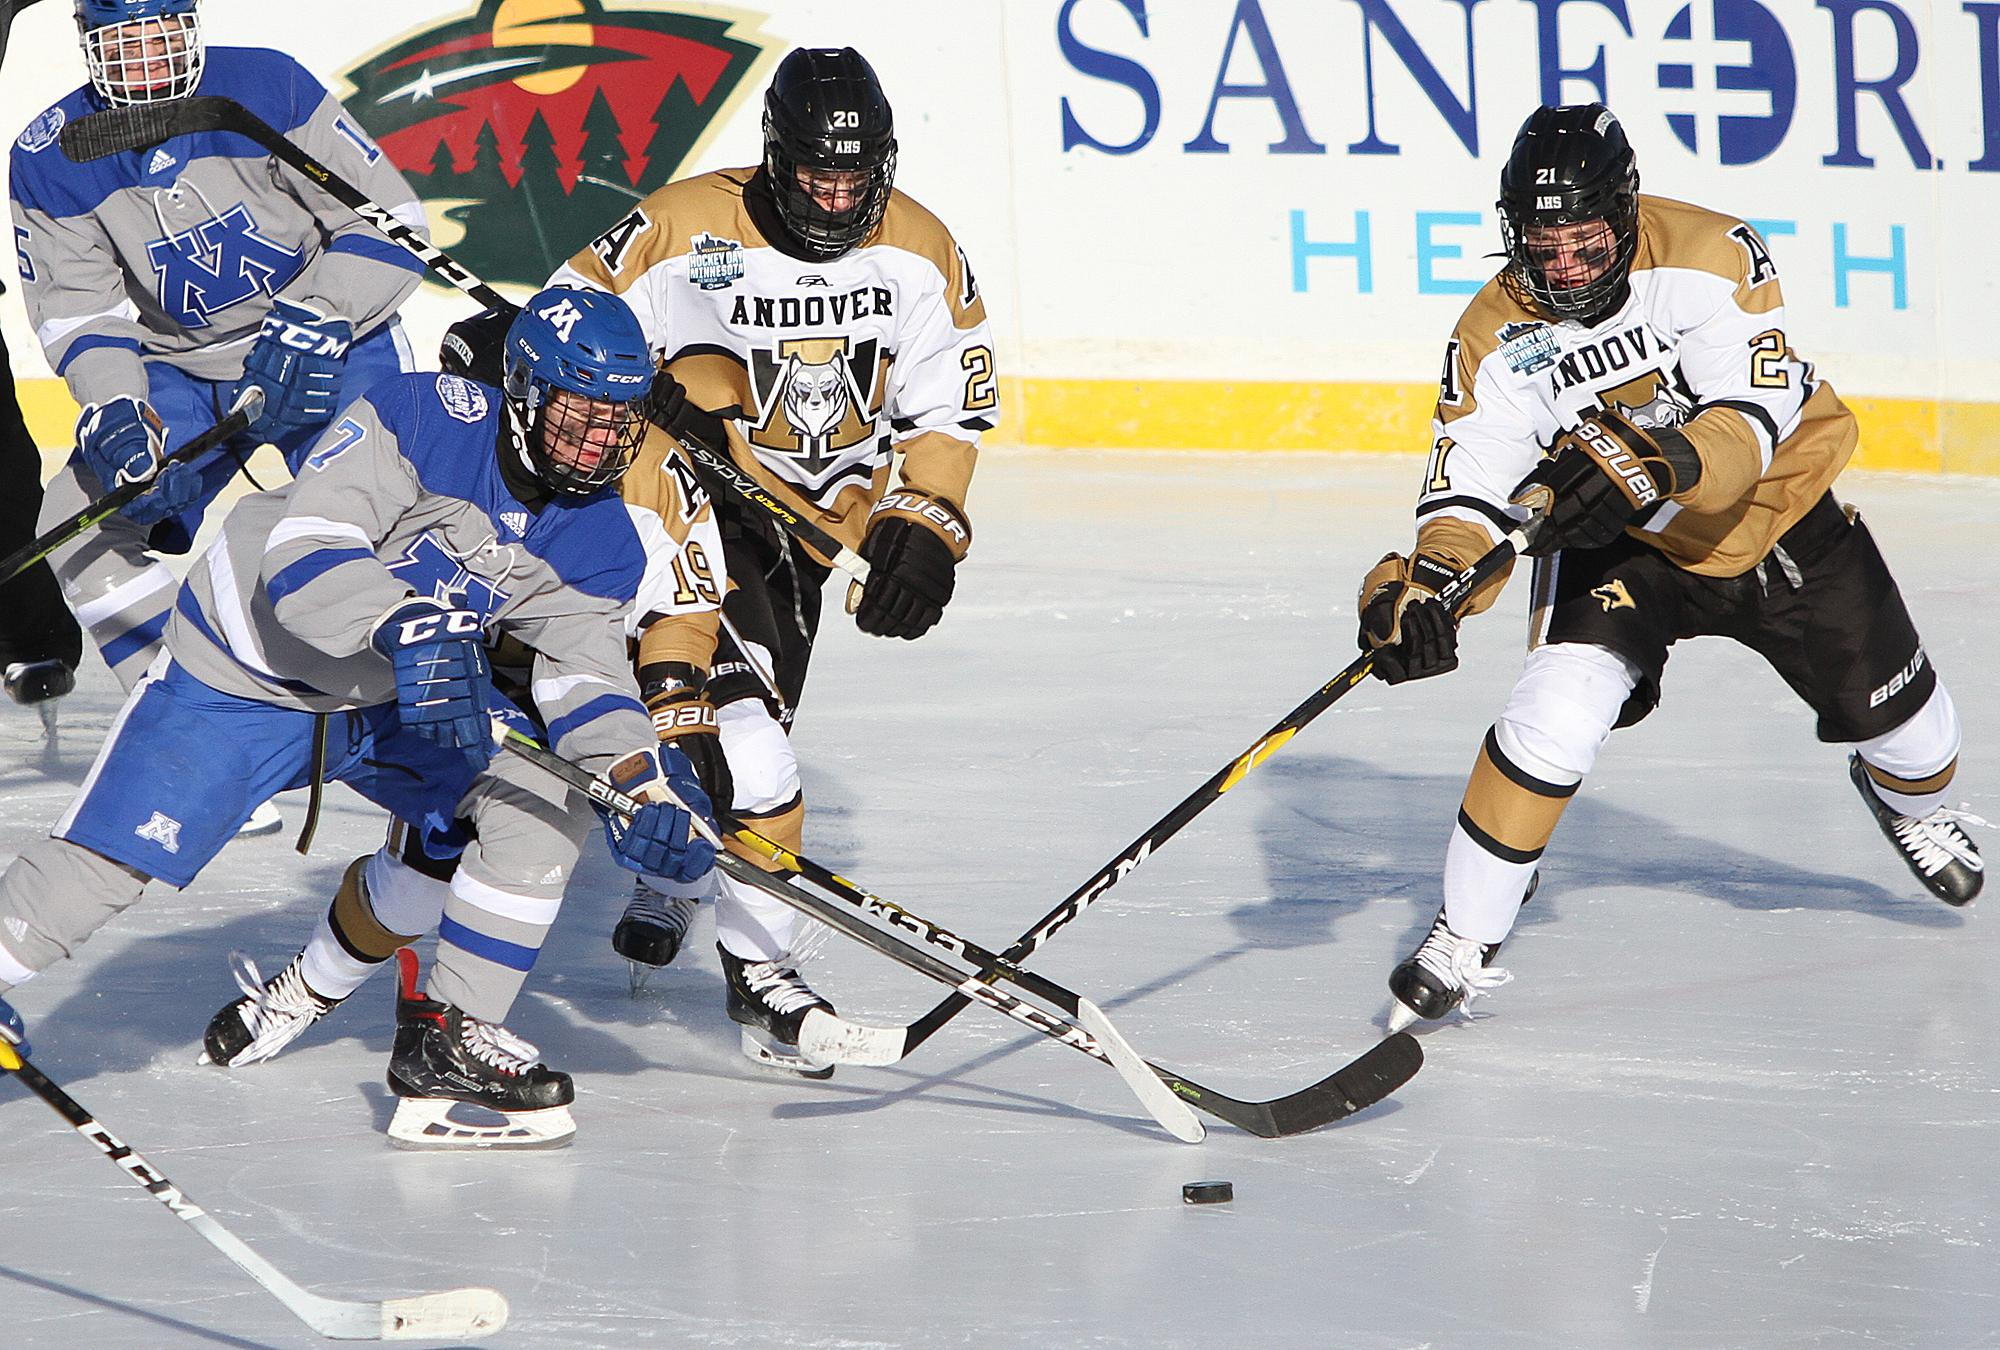 MN H.S.: Minnetonka's Three-goal, Third-period Outburst Freezes Andover In Hockey Day Minnesota Matinee